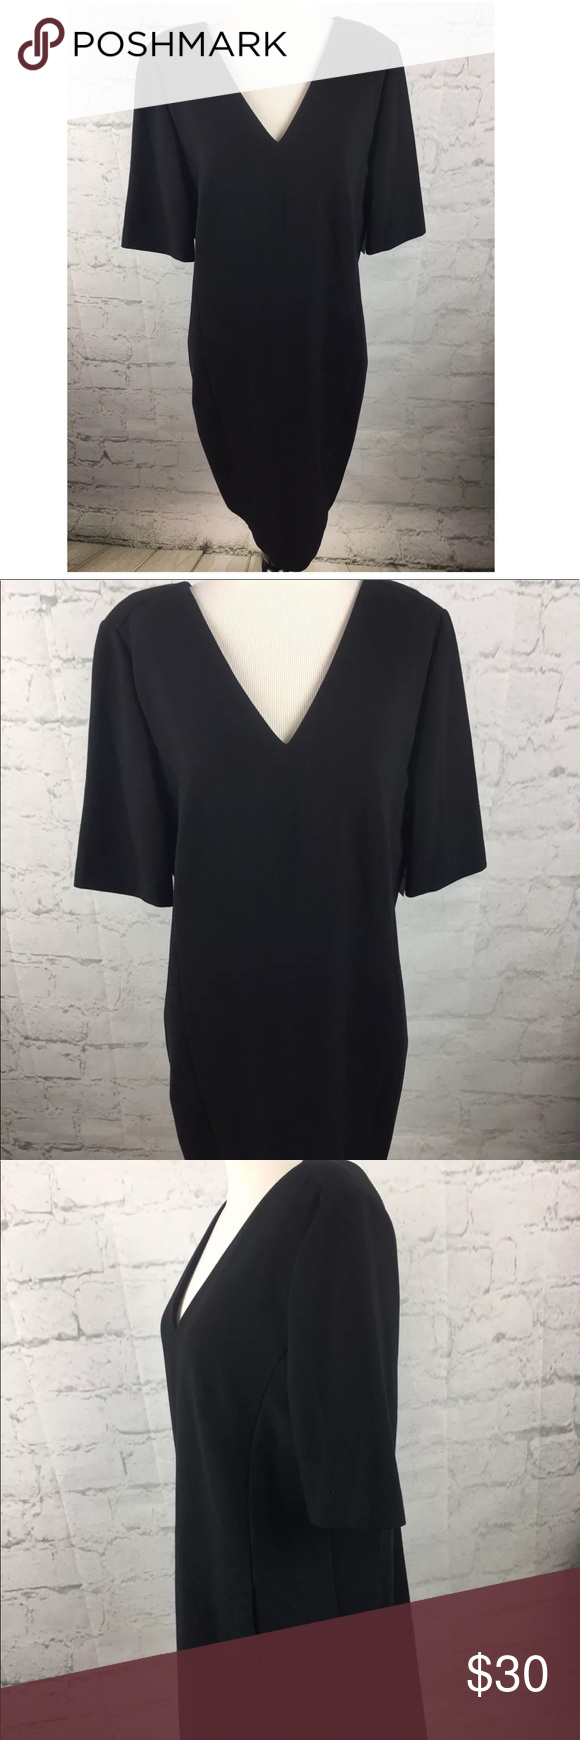 Lord & Taylor V dress sz 10 NWT NWT | Black shift dresses, Lord and ...